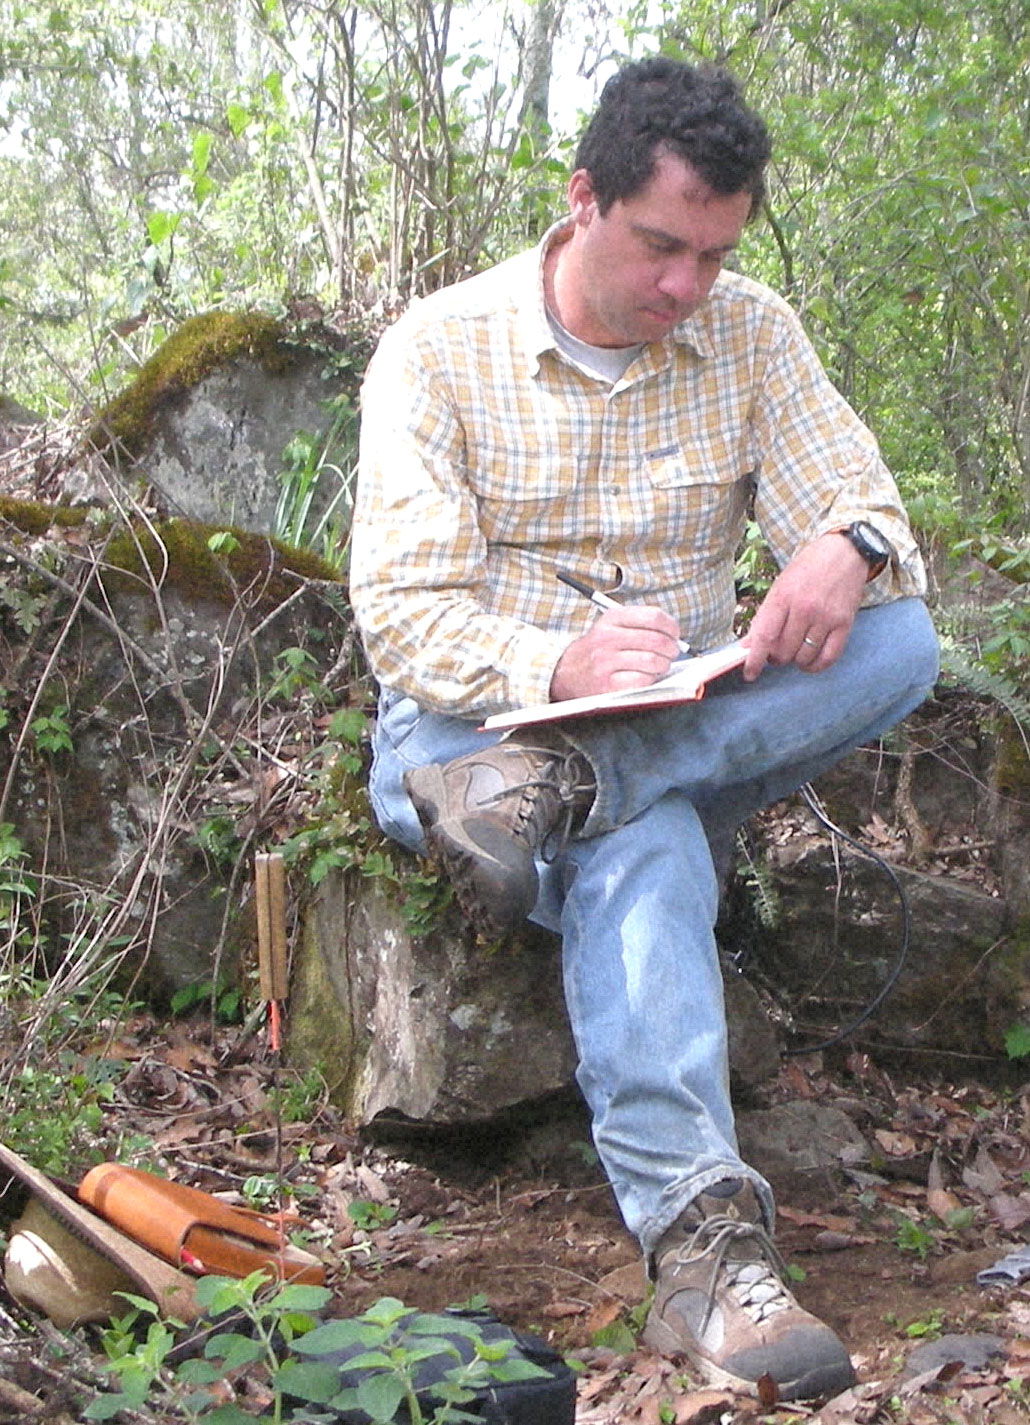 Chris Fisher surveying at Angamuco, Michoacán.